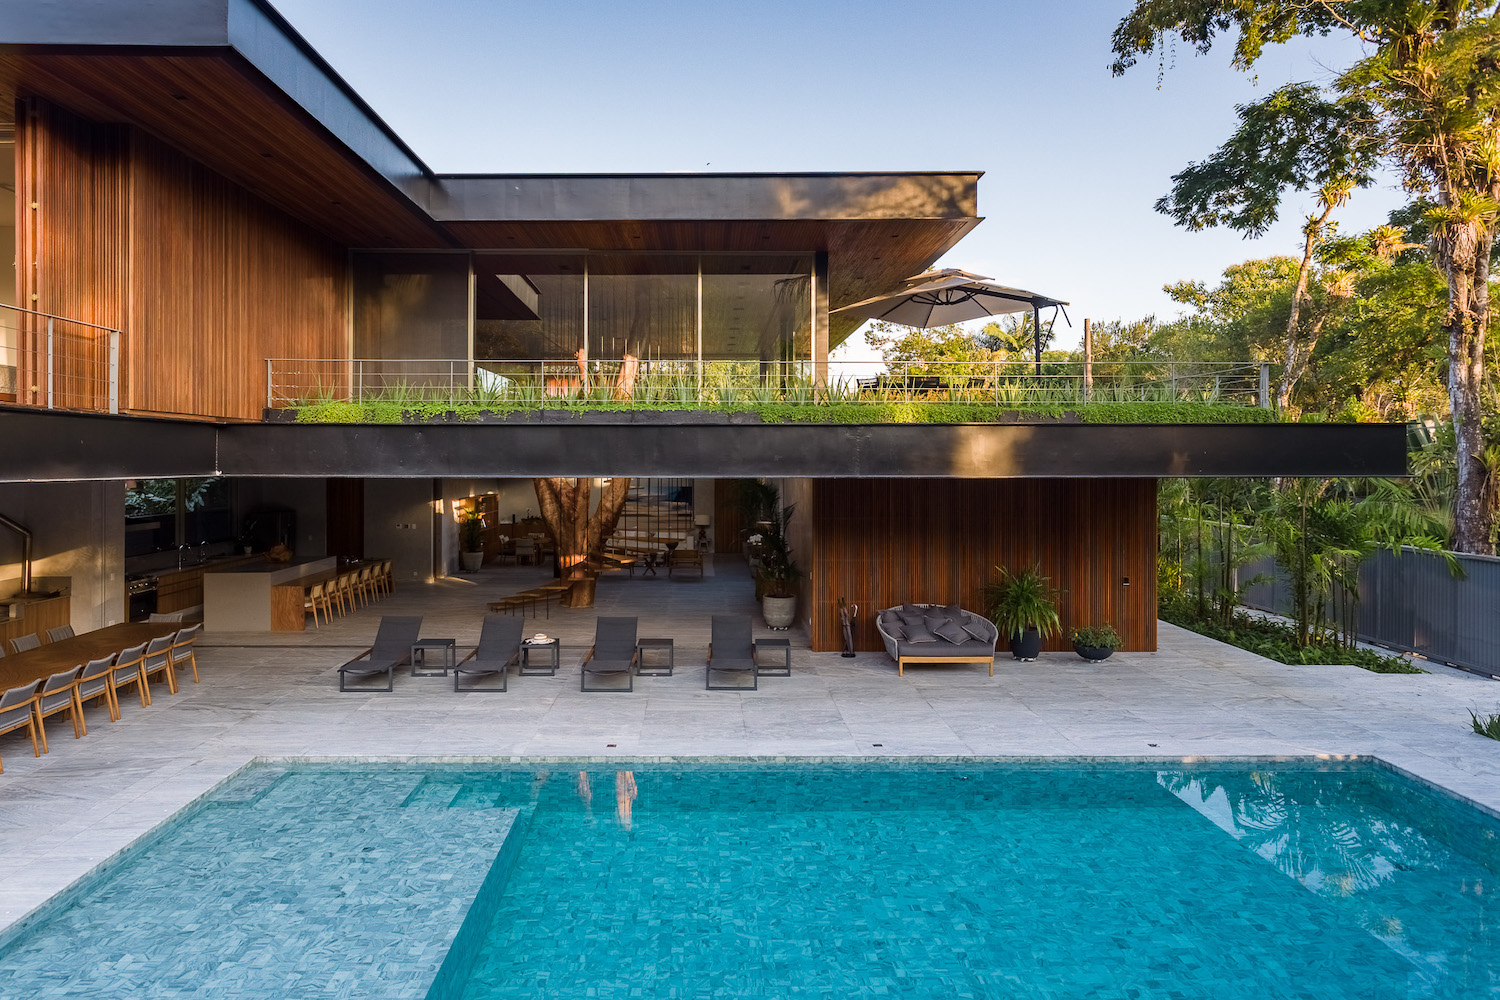 modern house in Brazil with pool